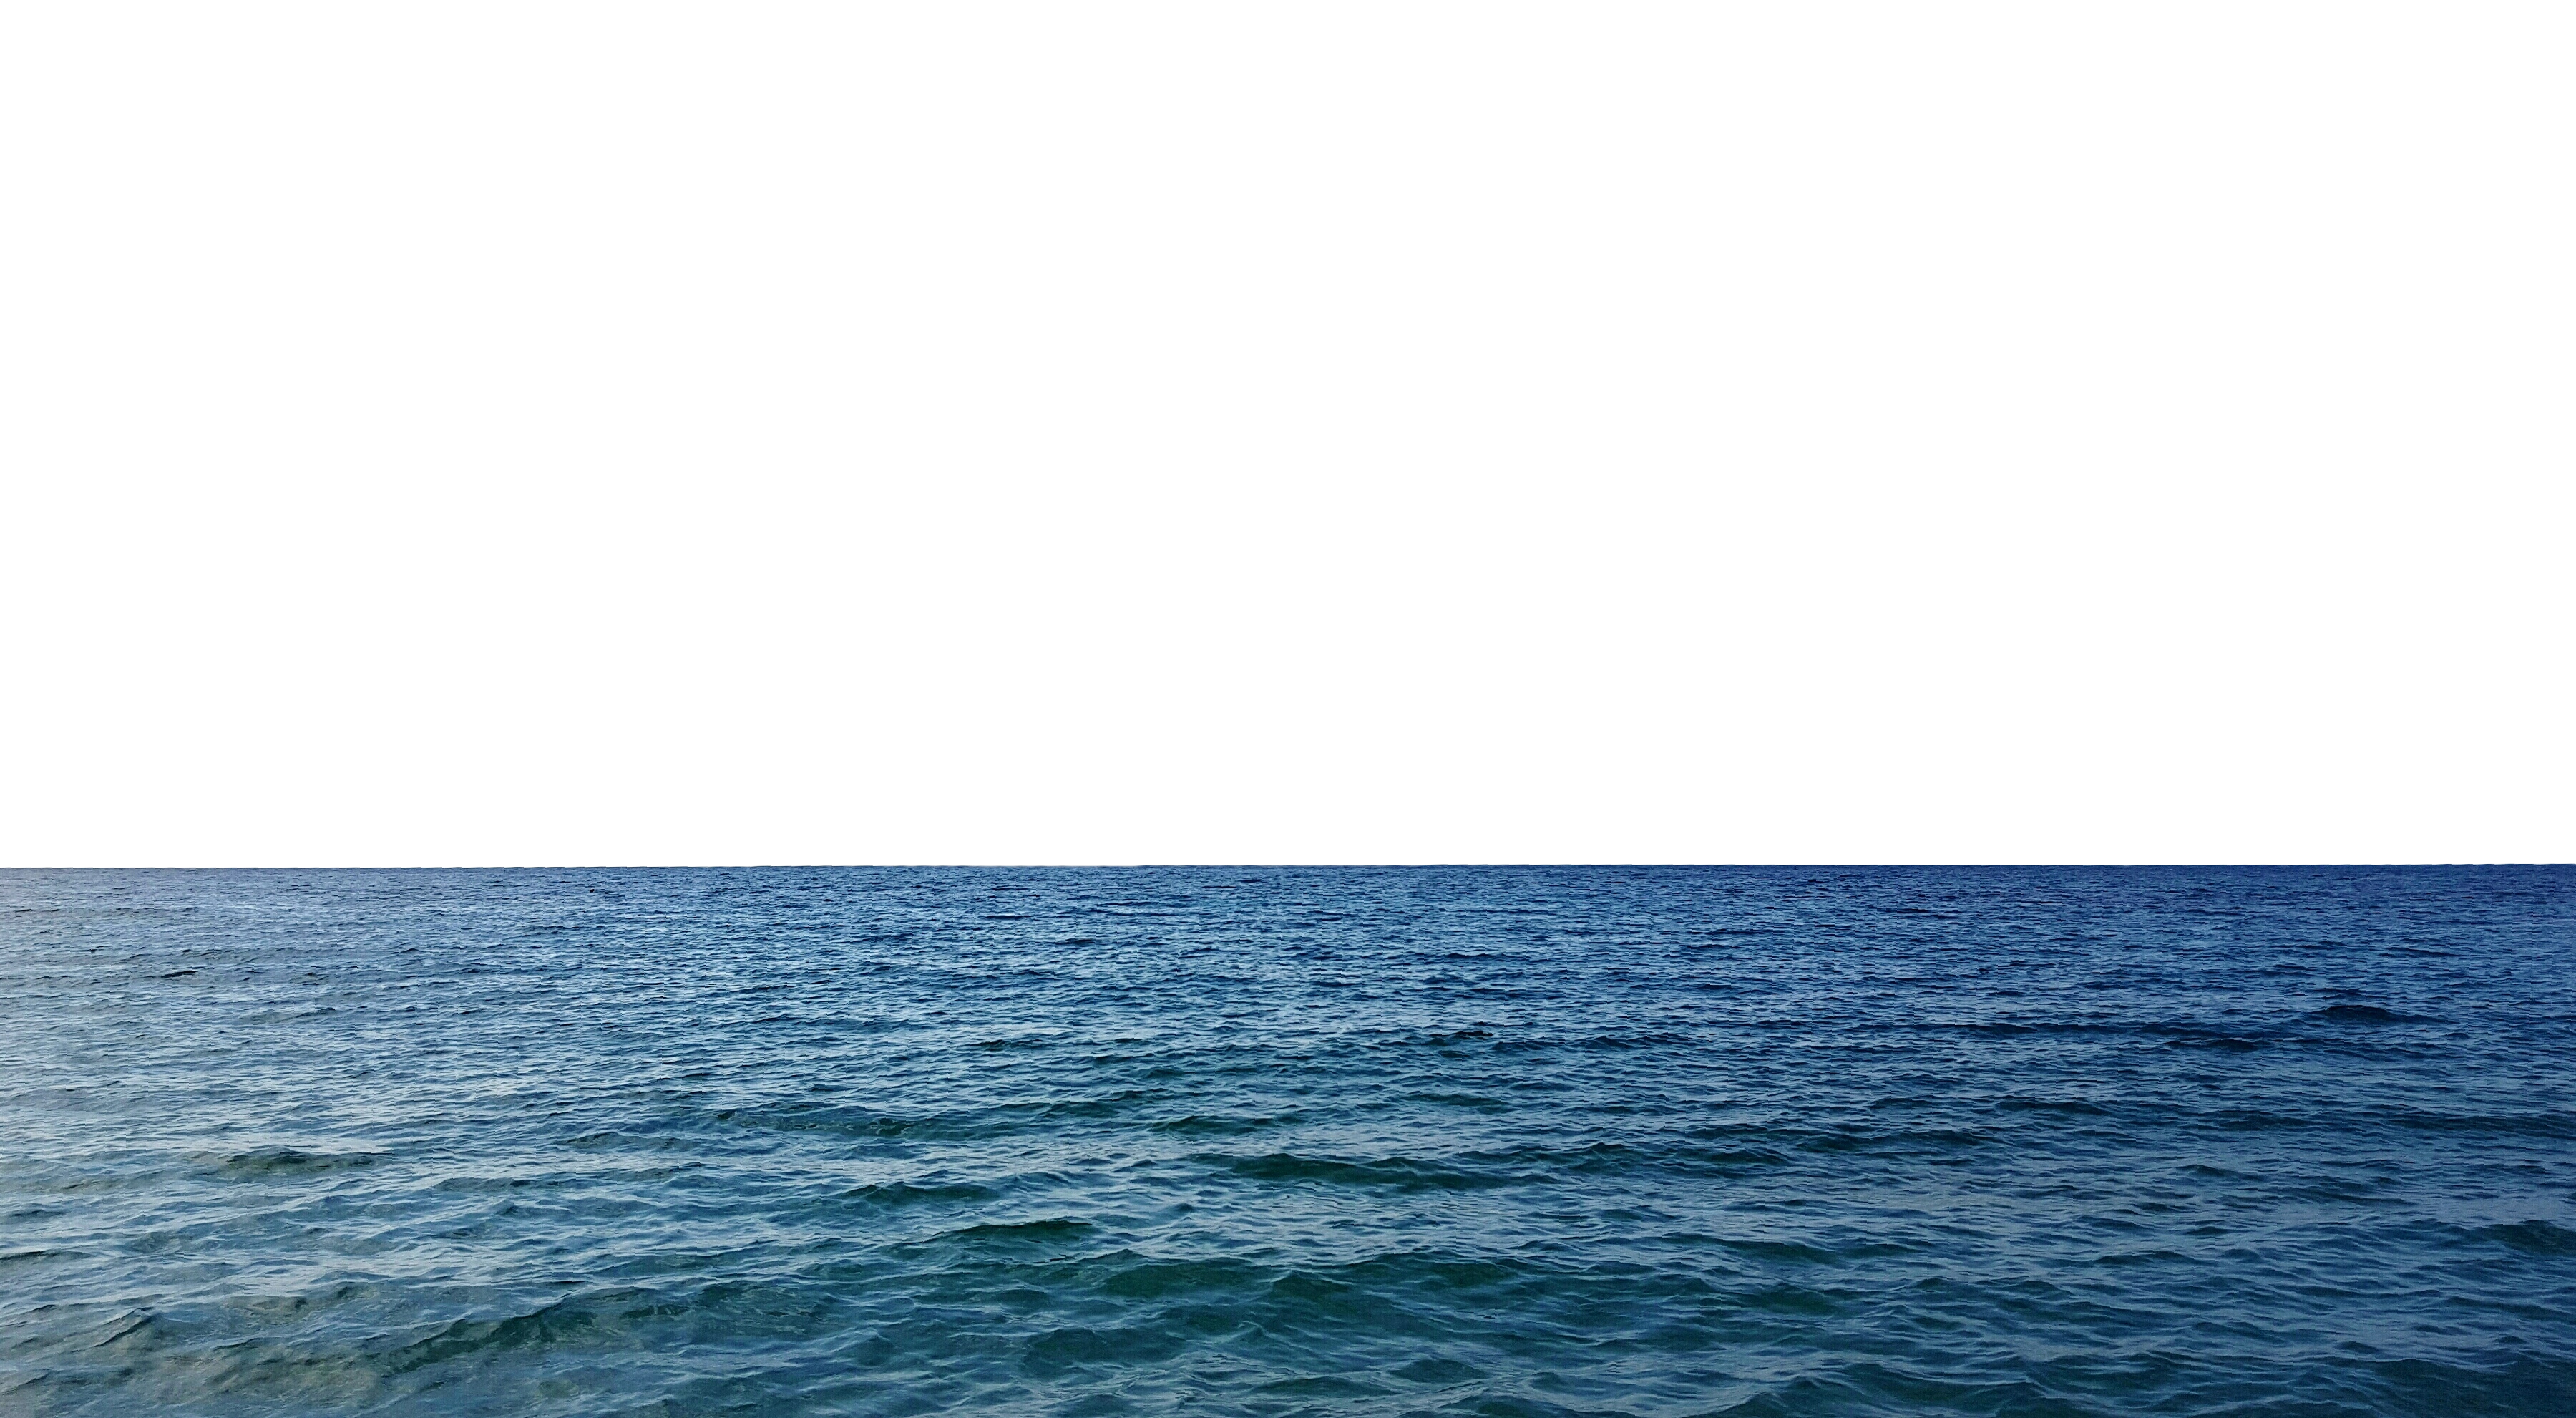 Beach background png. Sea image purepng free